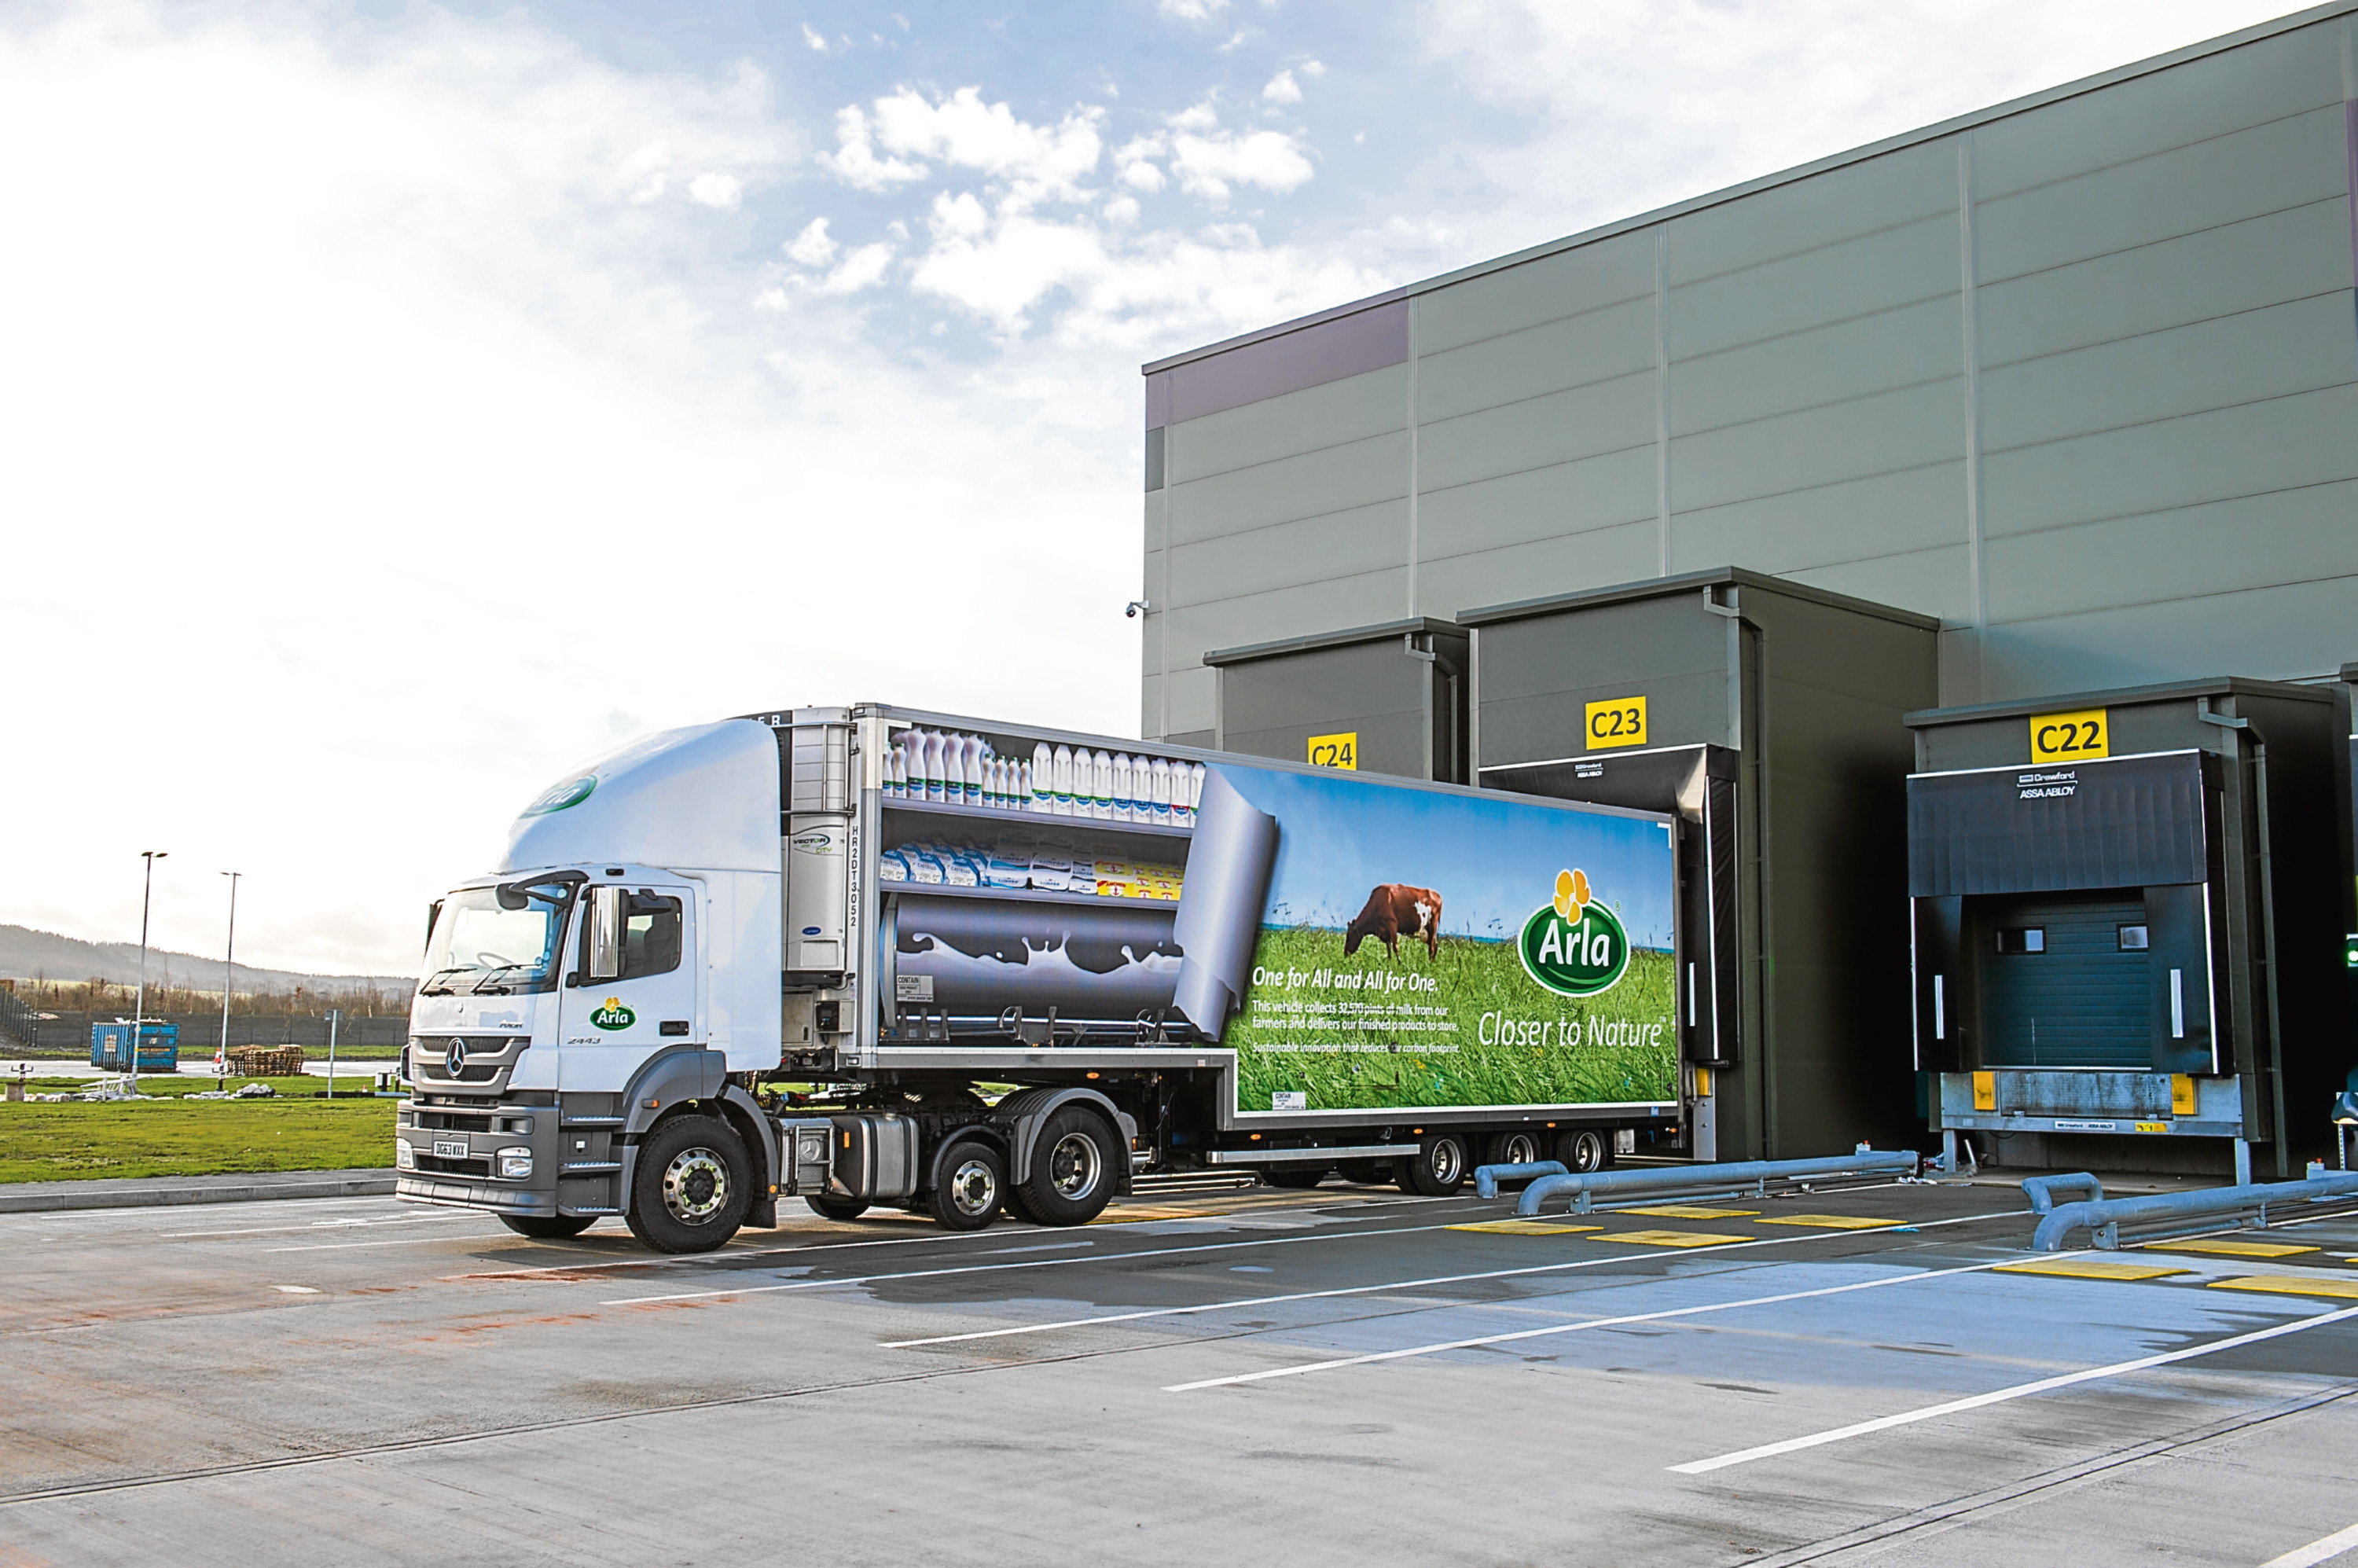 Arla buys milk from one in four UK dairy farmers